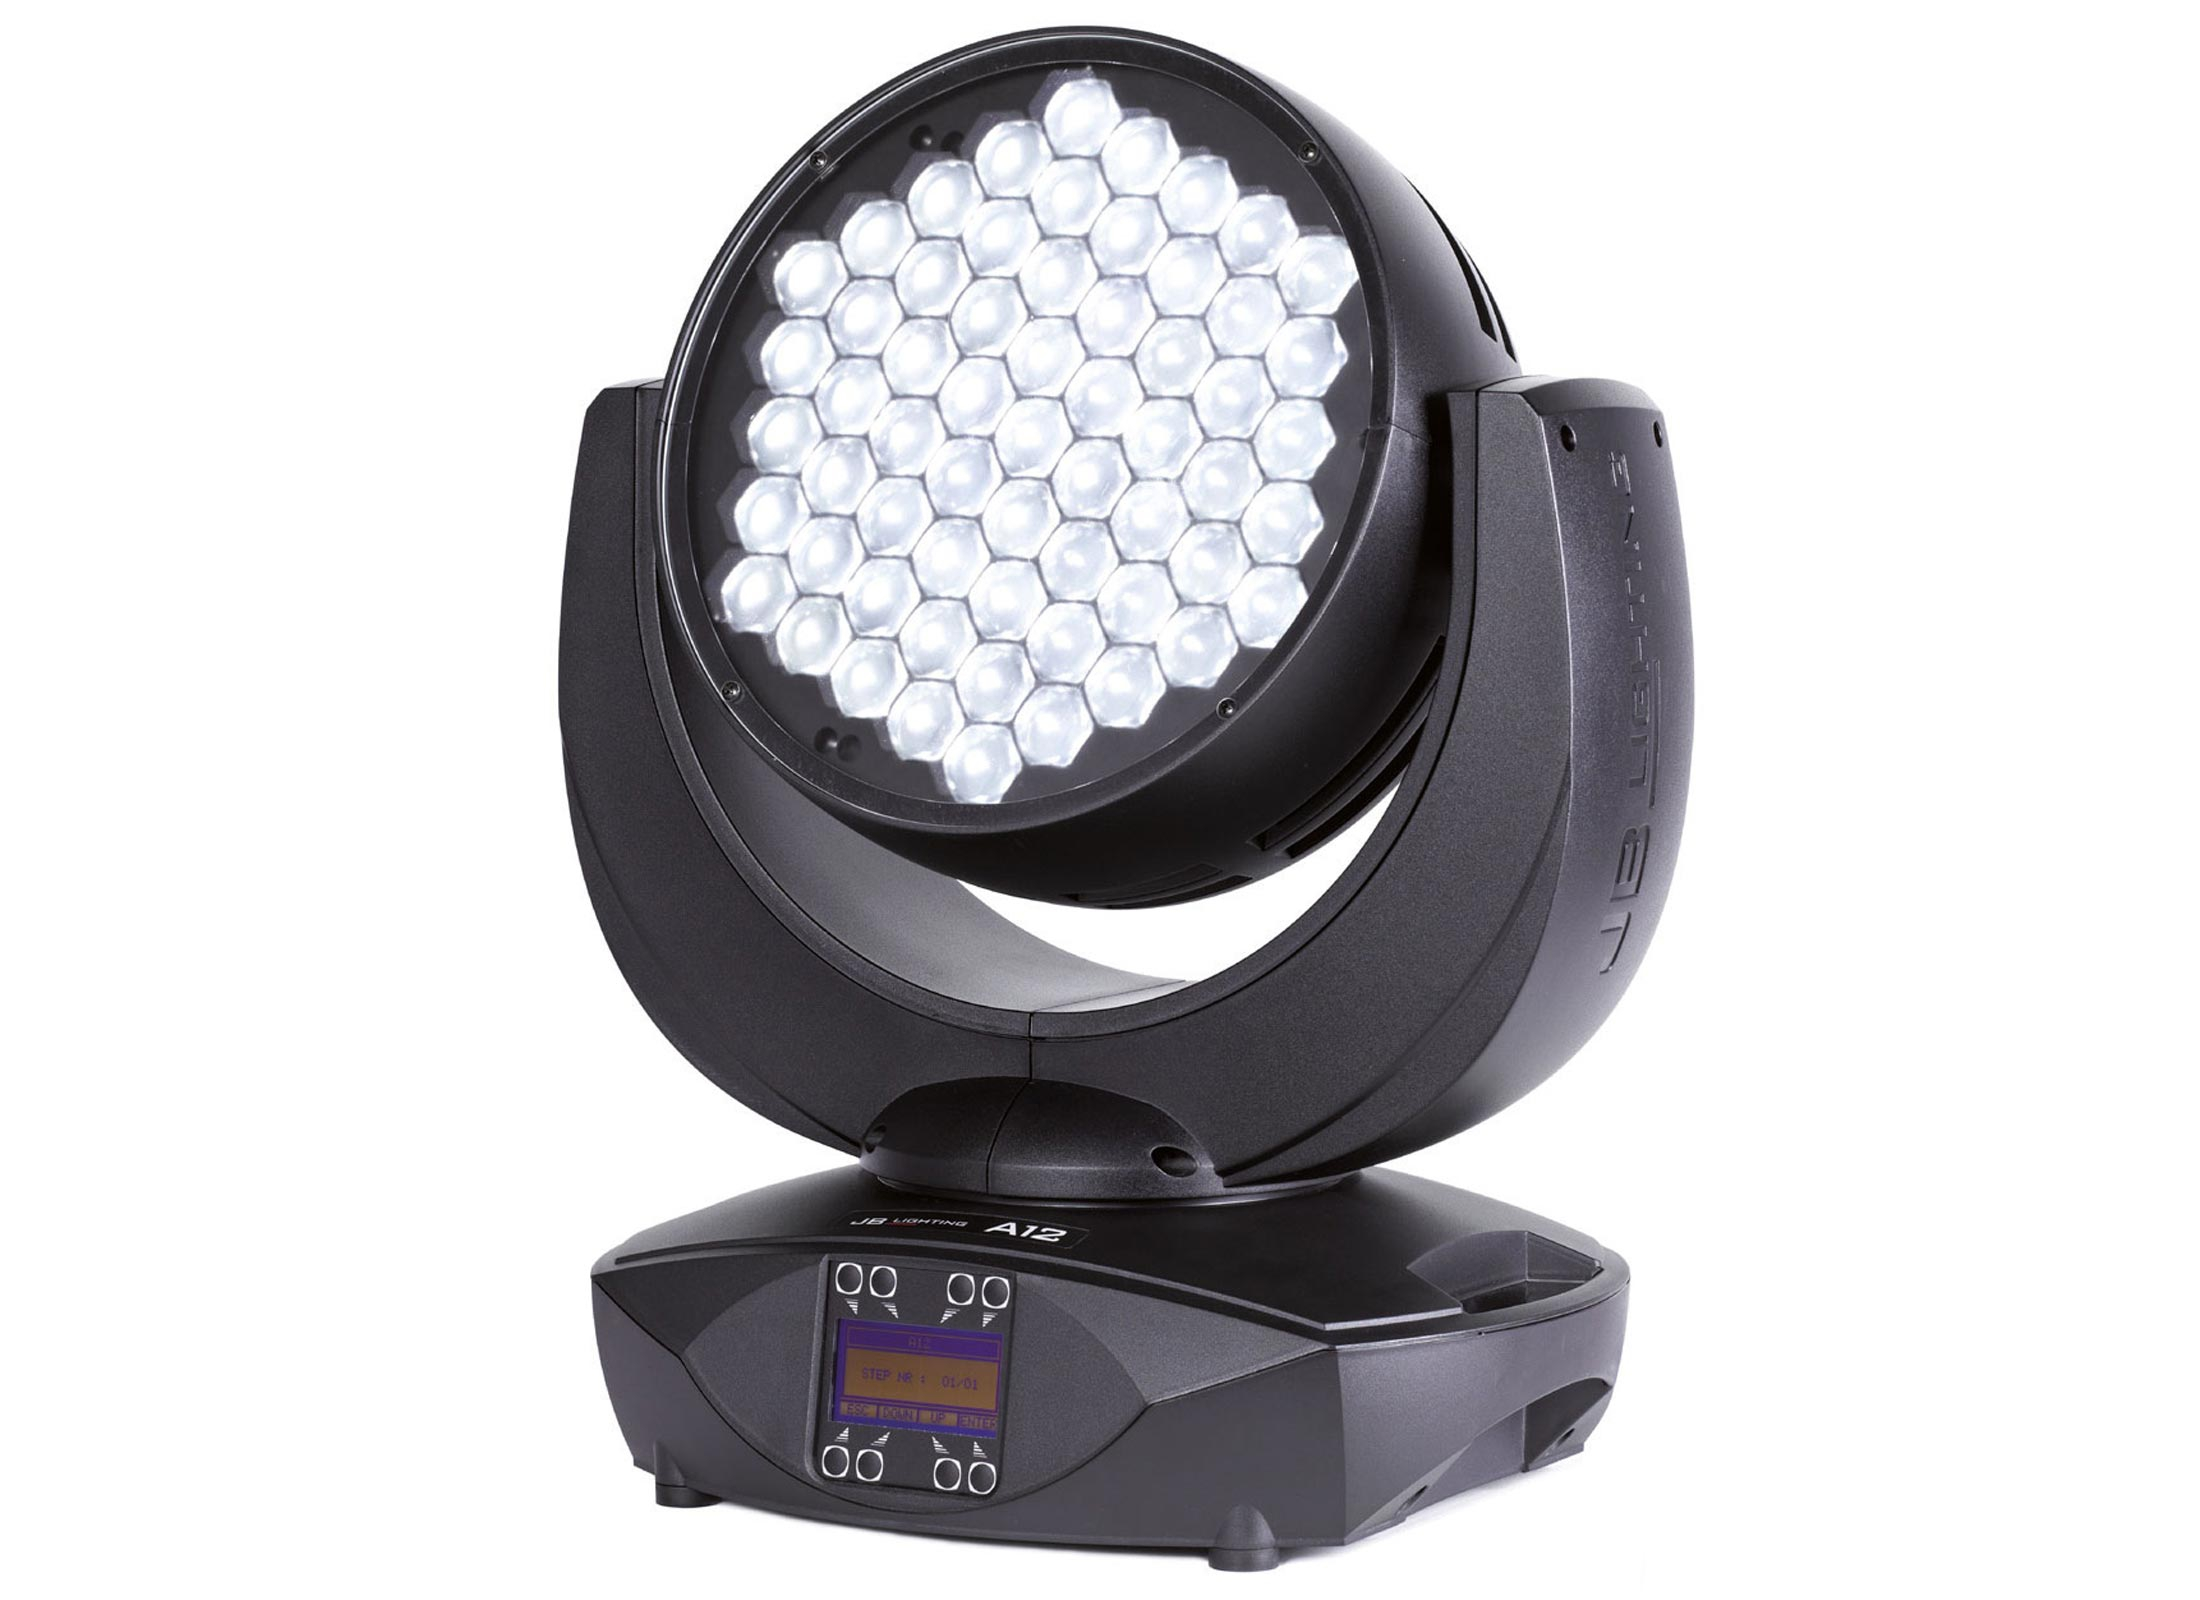 Jb Lighting Moving Head Jb Lighting A12 Led Moving Head Wash Online At Low Prices At Huss